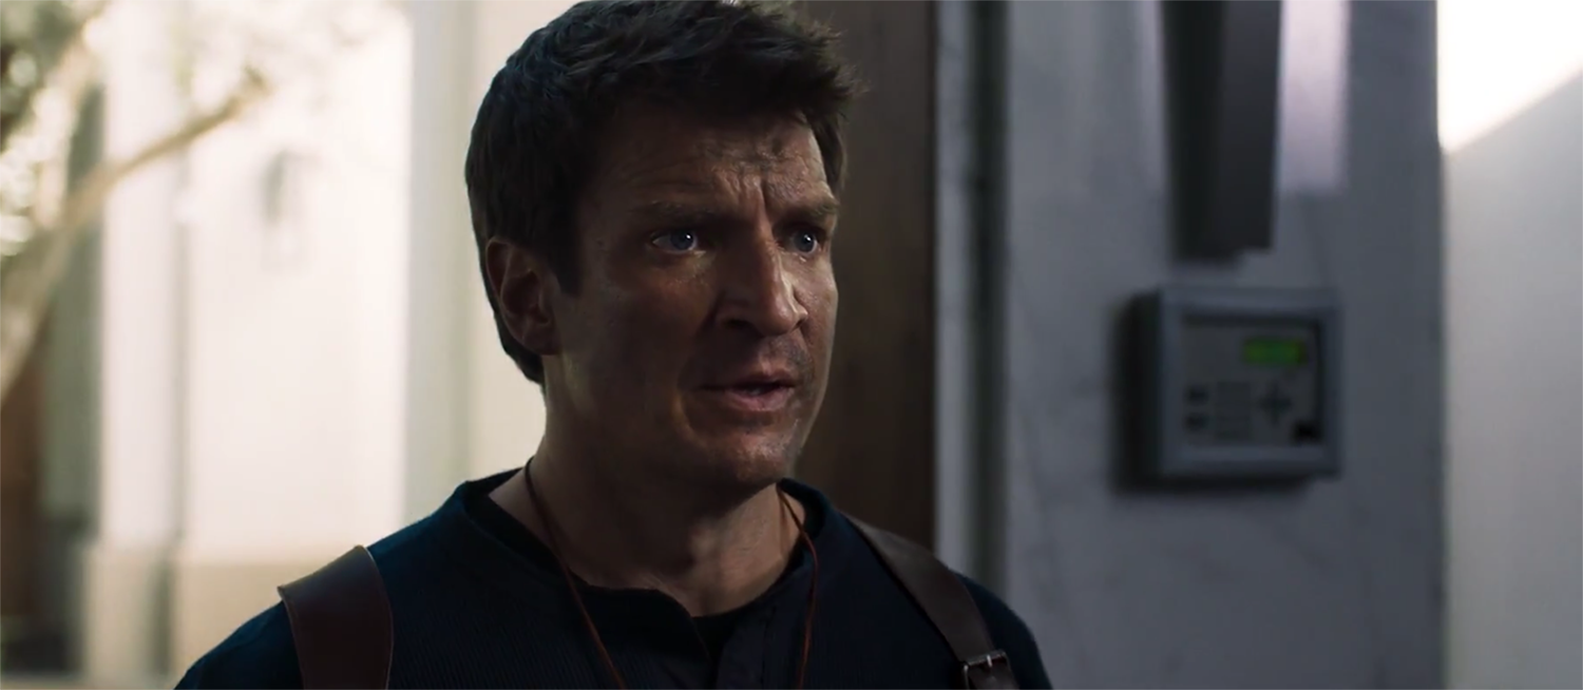 14-Minute Uncharted Fan Film Stars @NathanFillion And You Can Watch It Right Here  https://t.co/CEyCU1c0mk https://t.co/GcnRG2NPHJ